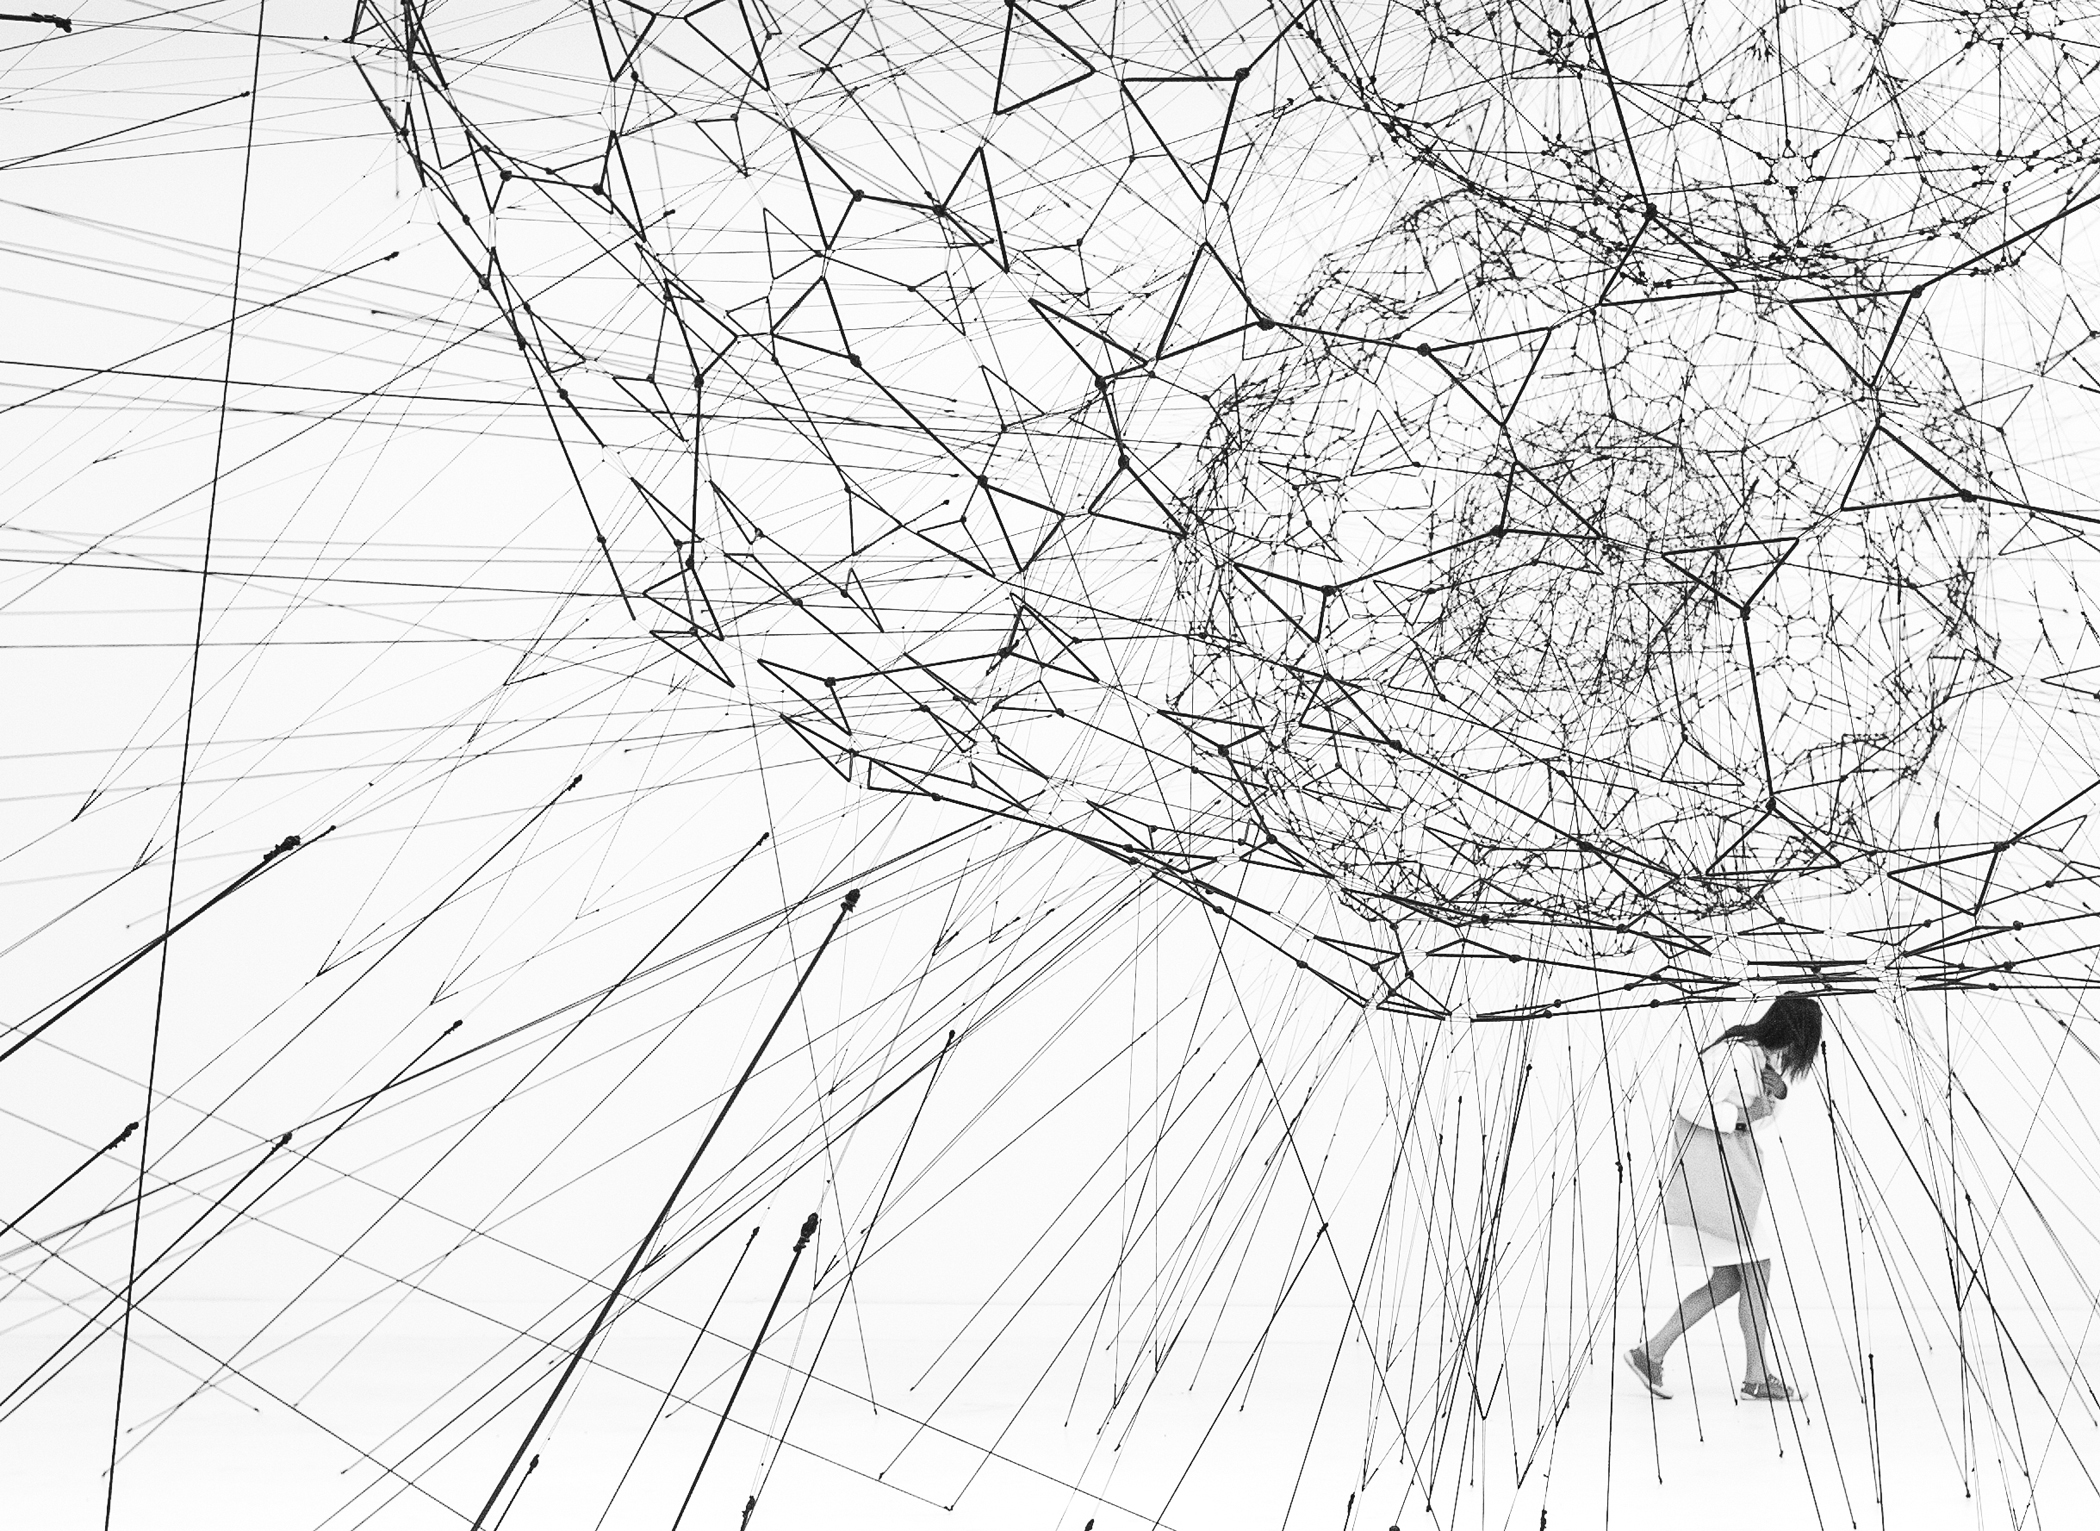 "Photography by Studio Tomás Saraceno, © 2016srerobinsonTomás Saraceno, New York/Cloud Cities, 2012; laser print on adhesive paper; © Tomás Saraceno; photo: courtesy the artist and Tanya Bonakdar Gallery, New York Tomás Saraceno, Galaxies Forming along Filaments, like Droplets along the Strands of a Spider's Web, 2009 (installation view, from 53rd Biennale di Venezia ""Fare Mondi""); courtesy the artist, Tanya Bonakdar Gallery, New York, Andersen's Contemporary, Copenhagen, Pinksummer contemporary art, Genoa, Esther Schipper, Berlin; photo: © Alessandro Coco Tomás Saraceno, Semi social musical instrument SXDF-NB1006-2: built by four Cyrtophora citricola -eight weeks, 2015 (detail), from the series Arachnid Orchestra. Jam Sessions; courtesy the artist, Tanya Bonakdar Gallery, New York, Andersen's Contemporary, Copenhagen, Pinksummer contemporary art, Genoa, Esther Schipper, Berlin; photo: © CCATomás Saraceno, Cloud Cities Thermodynamics of Self-Assembly/005, 2015; San Francisco Museum of Modern Art, Accessions Committee Fund purchase; © Tomás Saraceno; photo: courtesy the artist and Tanya Bonakdar Gallery, New York Tomás Saraceno, 14 billions (working title), 2010 (installation view, Bonniers Konsthall, Stockholm); commissioned by Bonniers Konsthall; courtesy the artist, Tanya Bonakdar Gallery, New York, Andersen's Contemporary, Copenhagen, Pinksummer contemporary art, Genoa, Esther Schipper, Berlin; ©Tomás Saraceno Photo: Fritjof Capra"